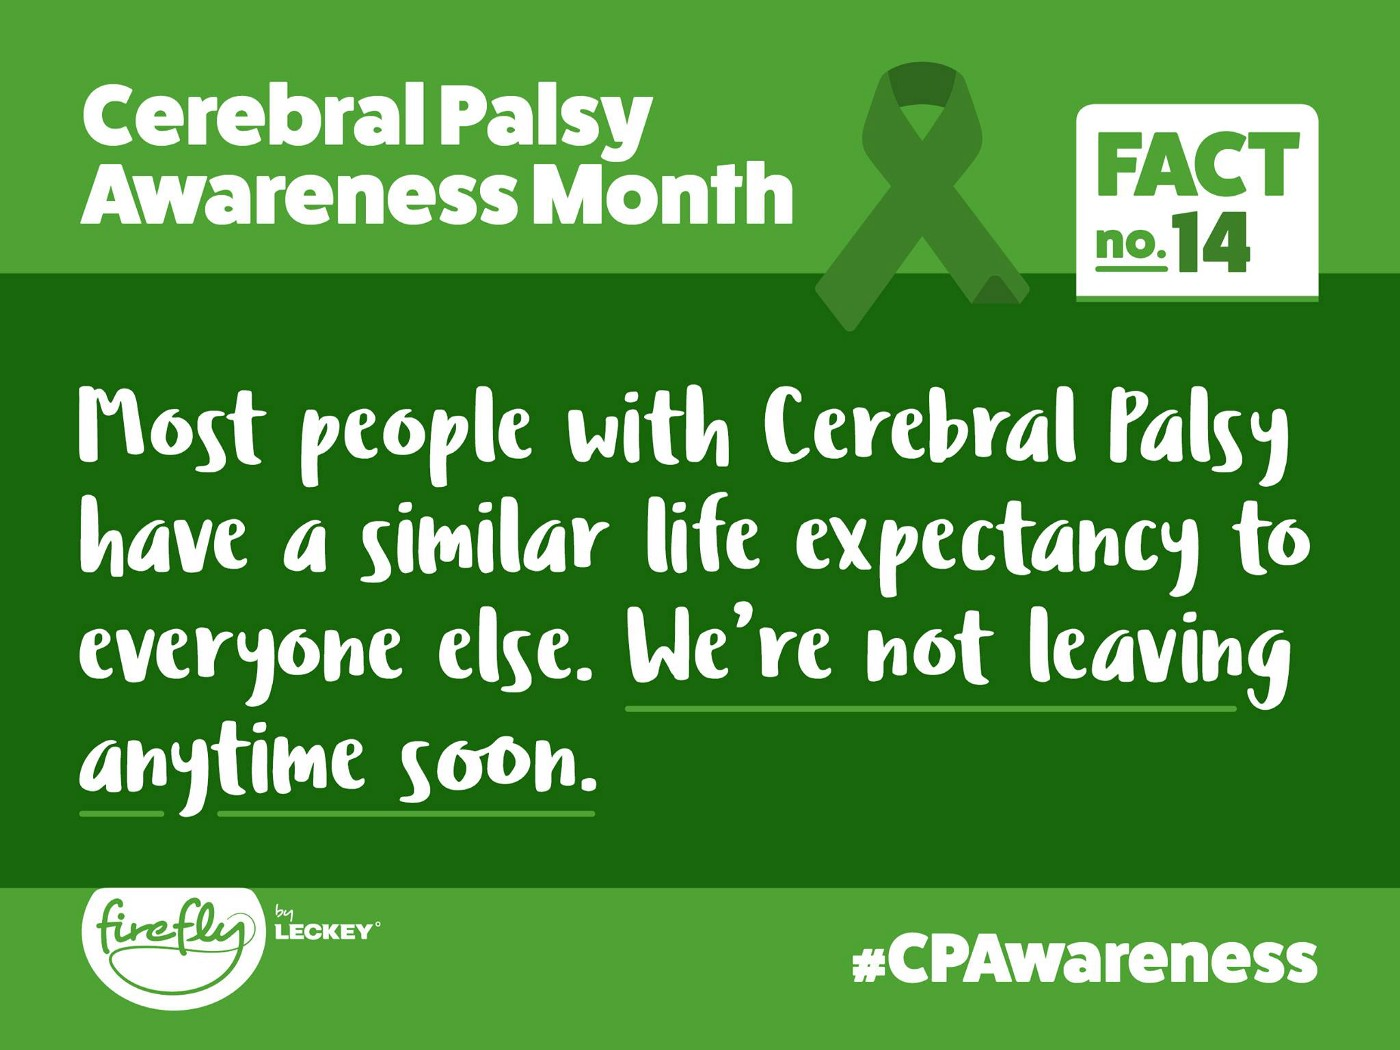 """""""Most people with Cerebral Palsy have a similar life expectancy to everyone else. We're not leaving anytime soon."""""""